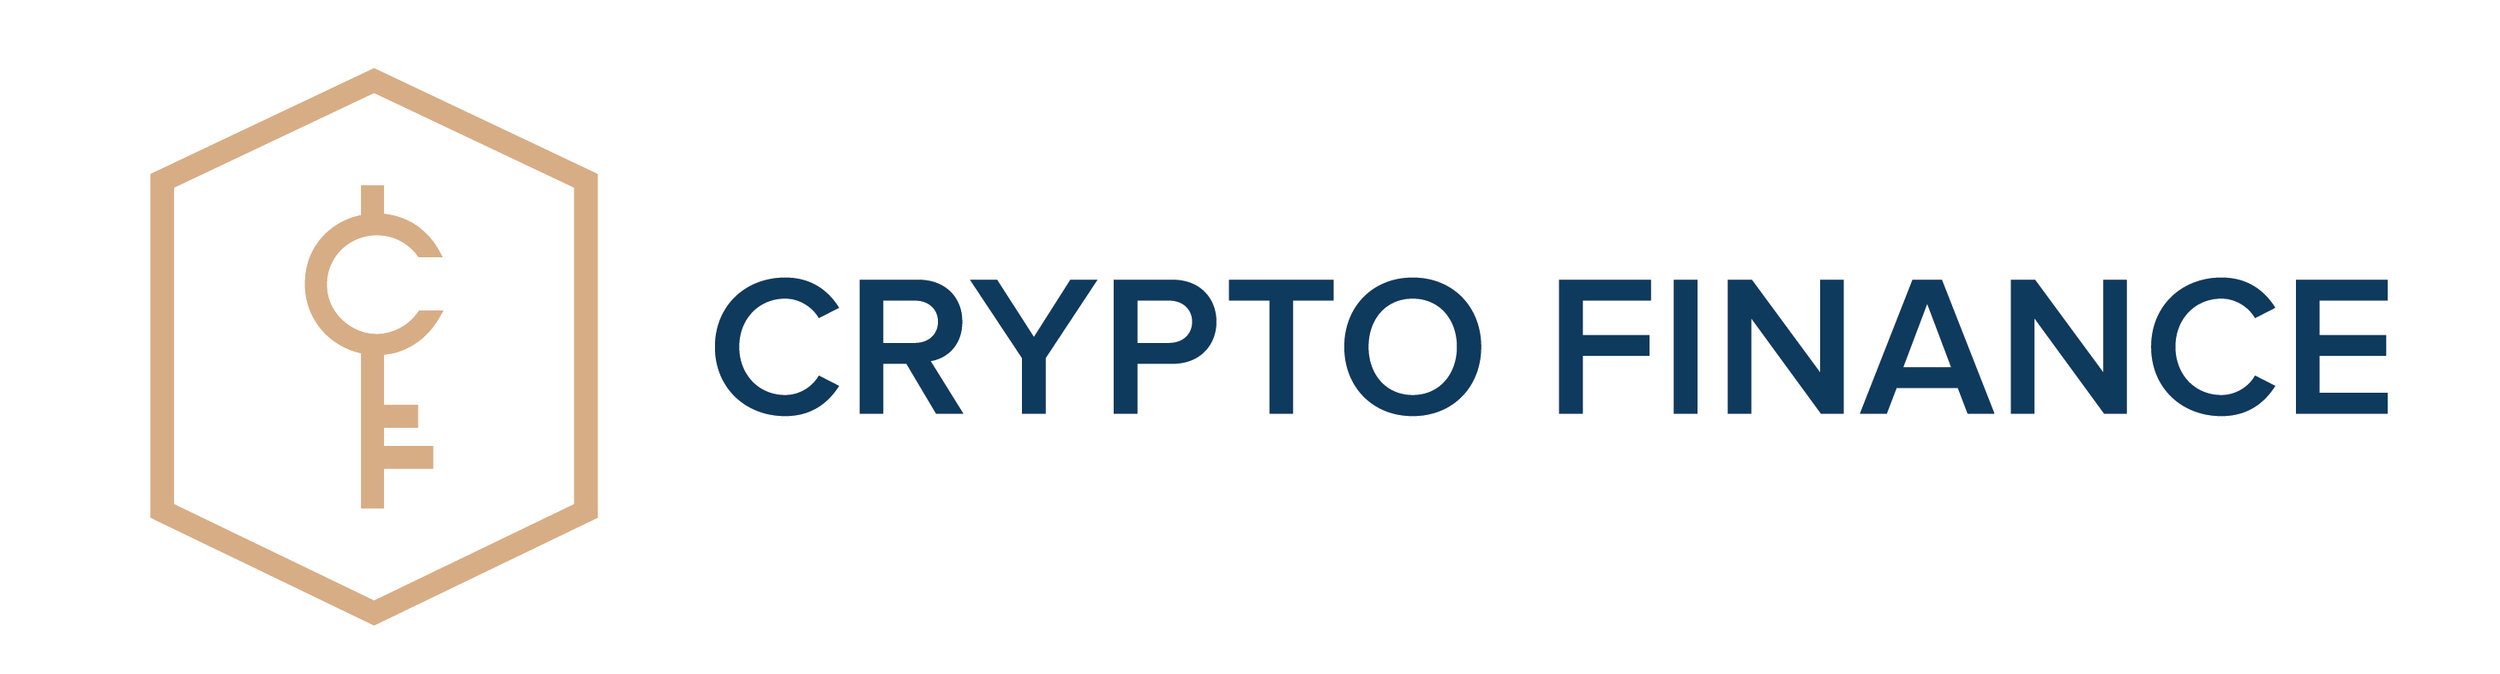 Crypto-Finance-logo.jpg